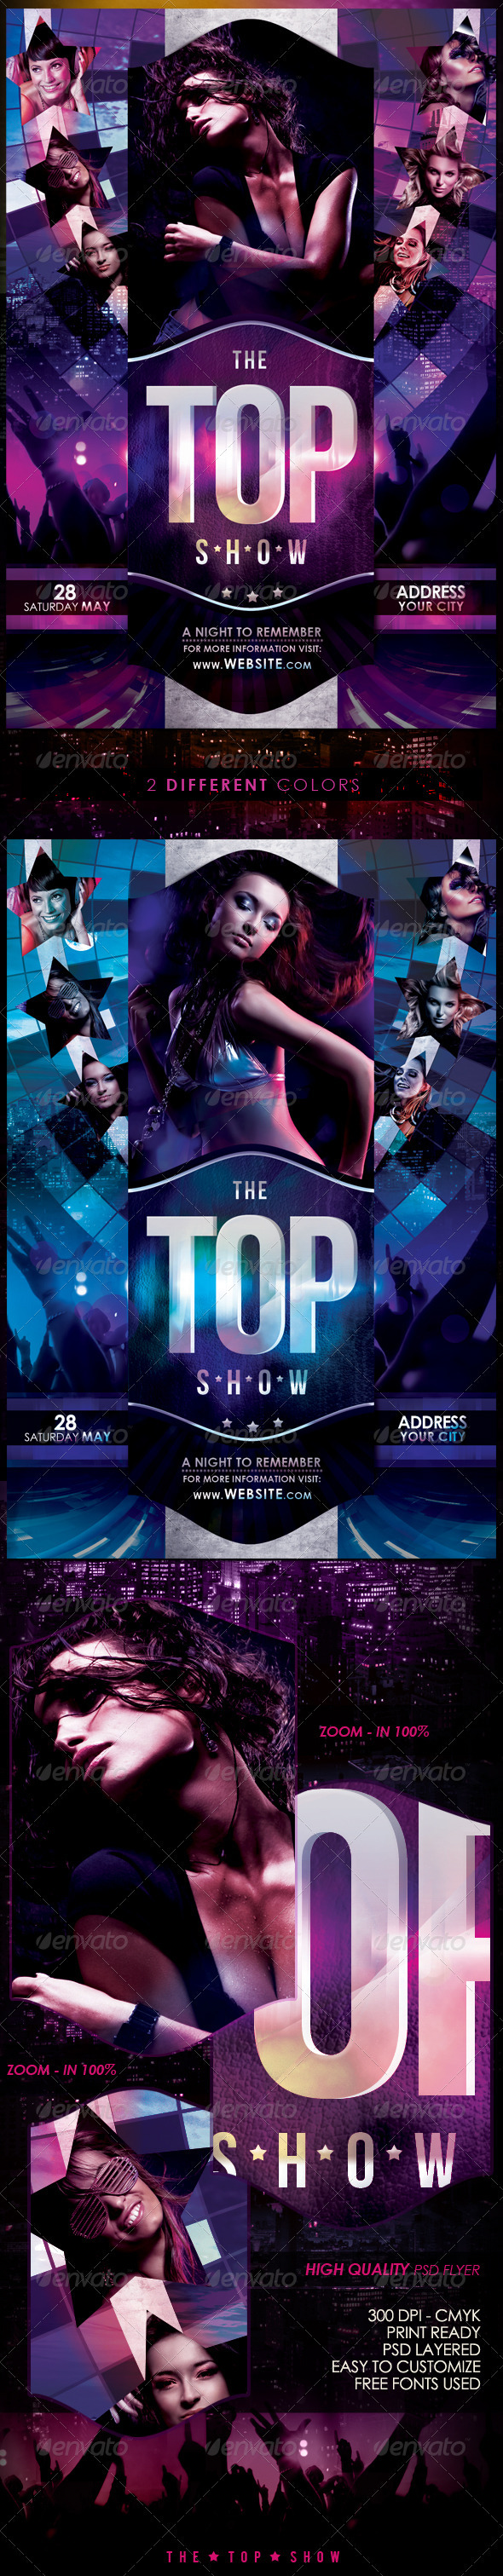 The Top Show Flyer Template - Clubs & Parties Events